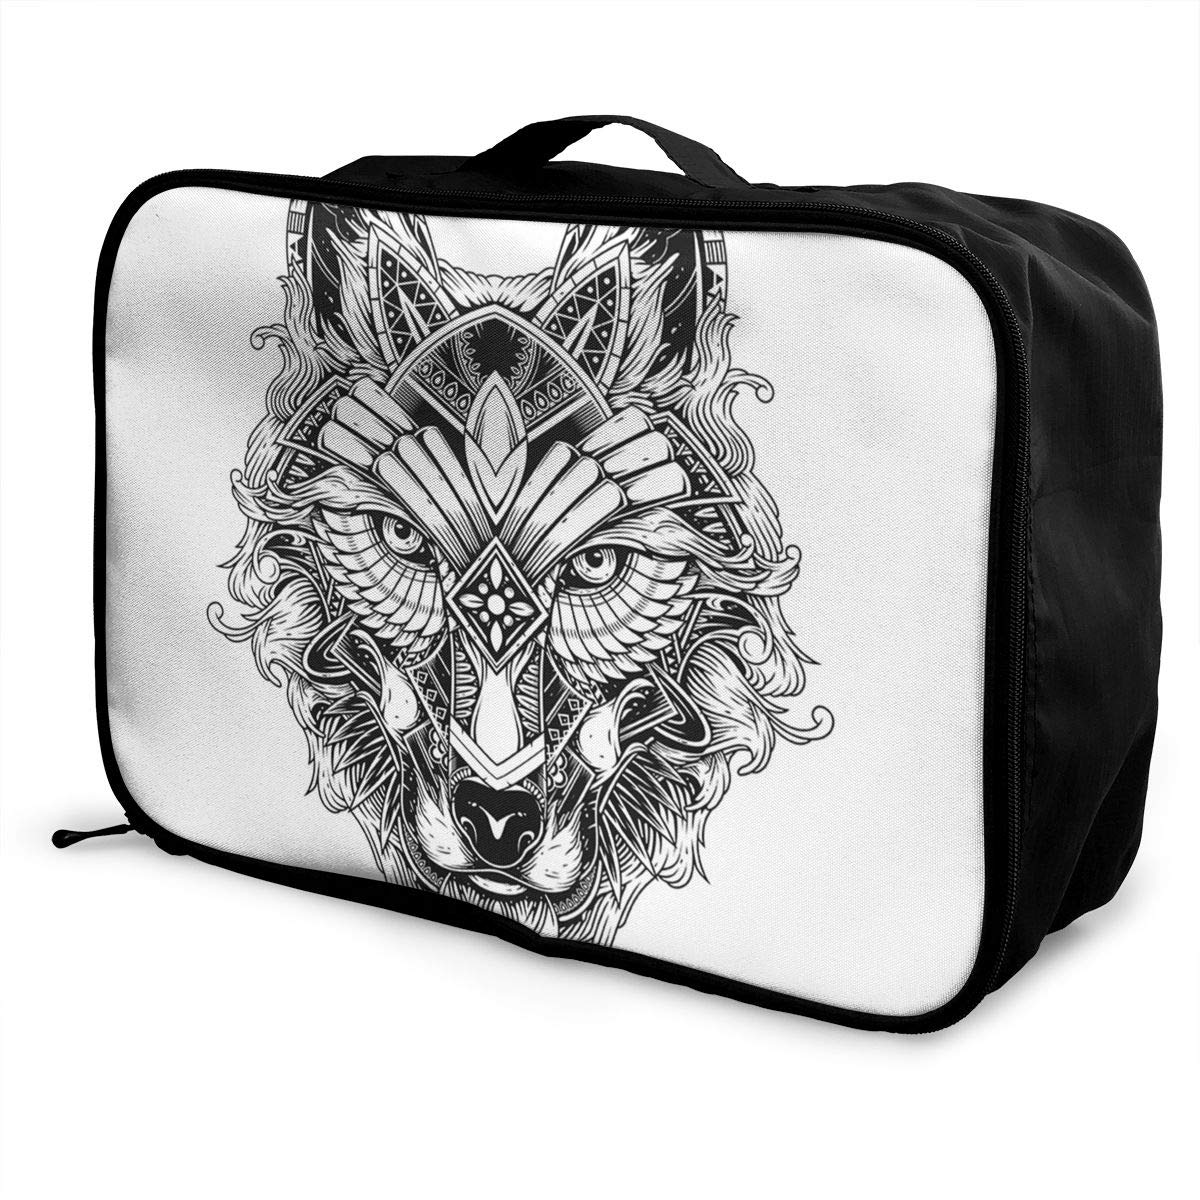 ADGAI Wolf Canvas Travel Weekender Bag,Fashion Custom Lightweight Large Capacity Portable Luggage Bag,Suitcase Trolley Bag